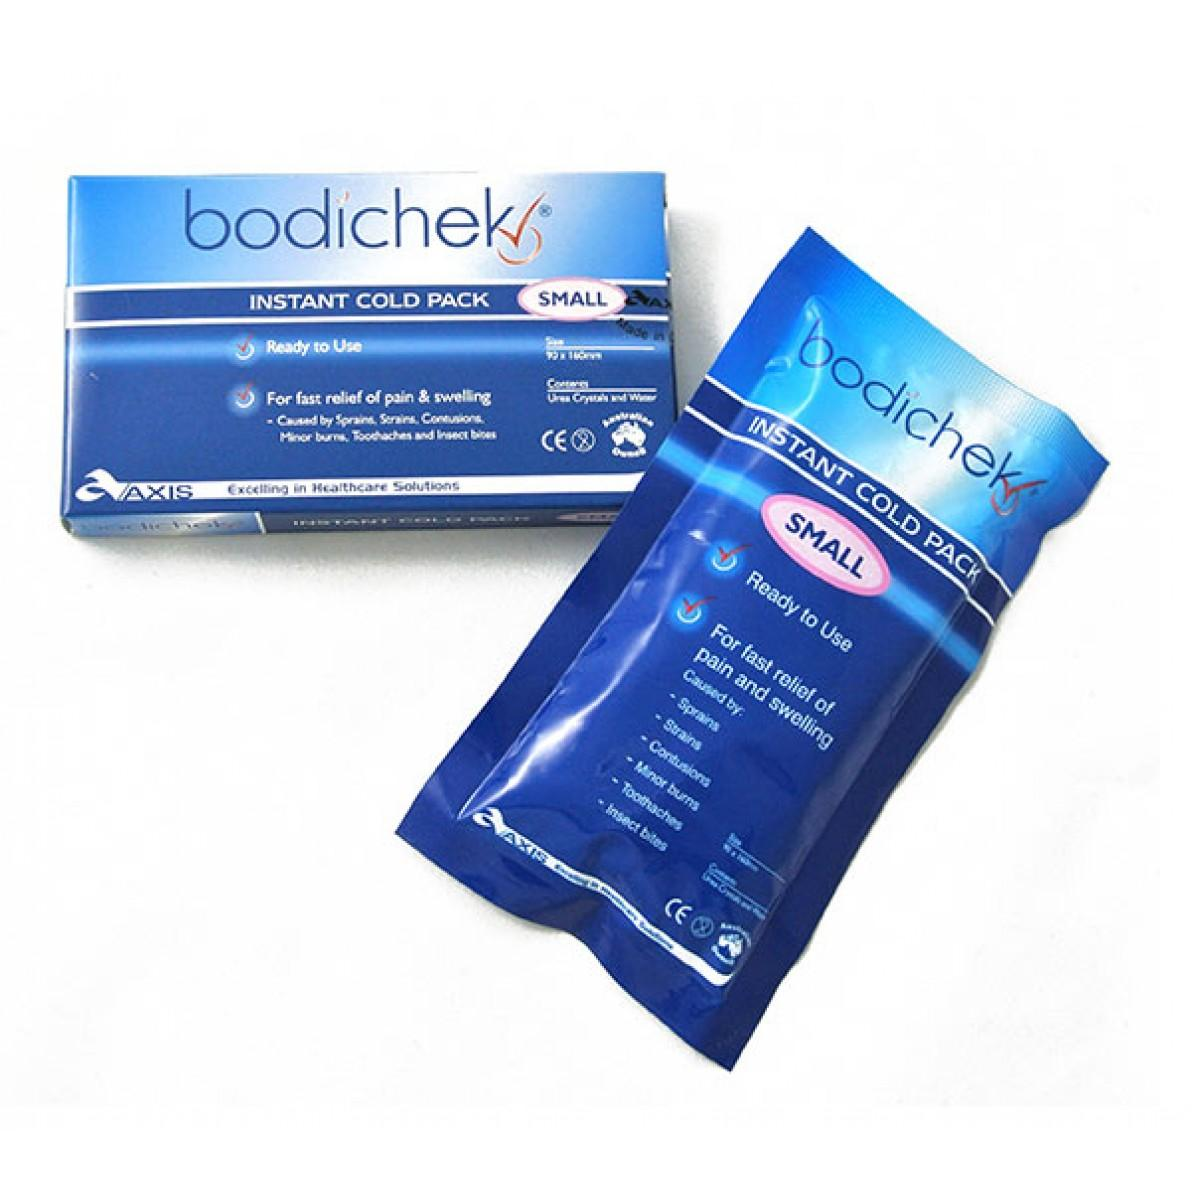 BODICHEK INSTANT COLD PACK SMALL, EACH